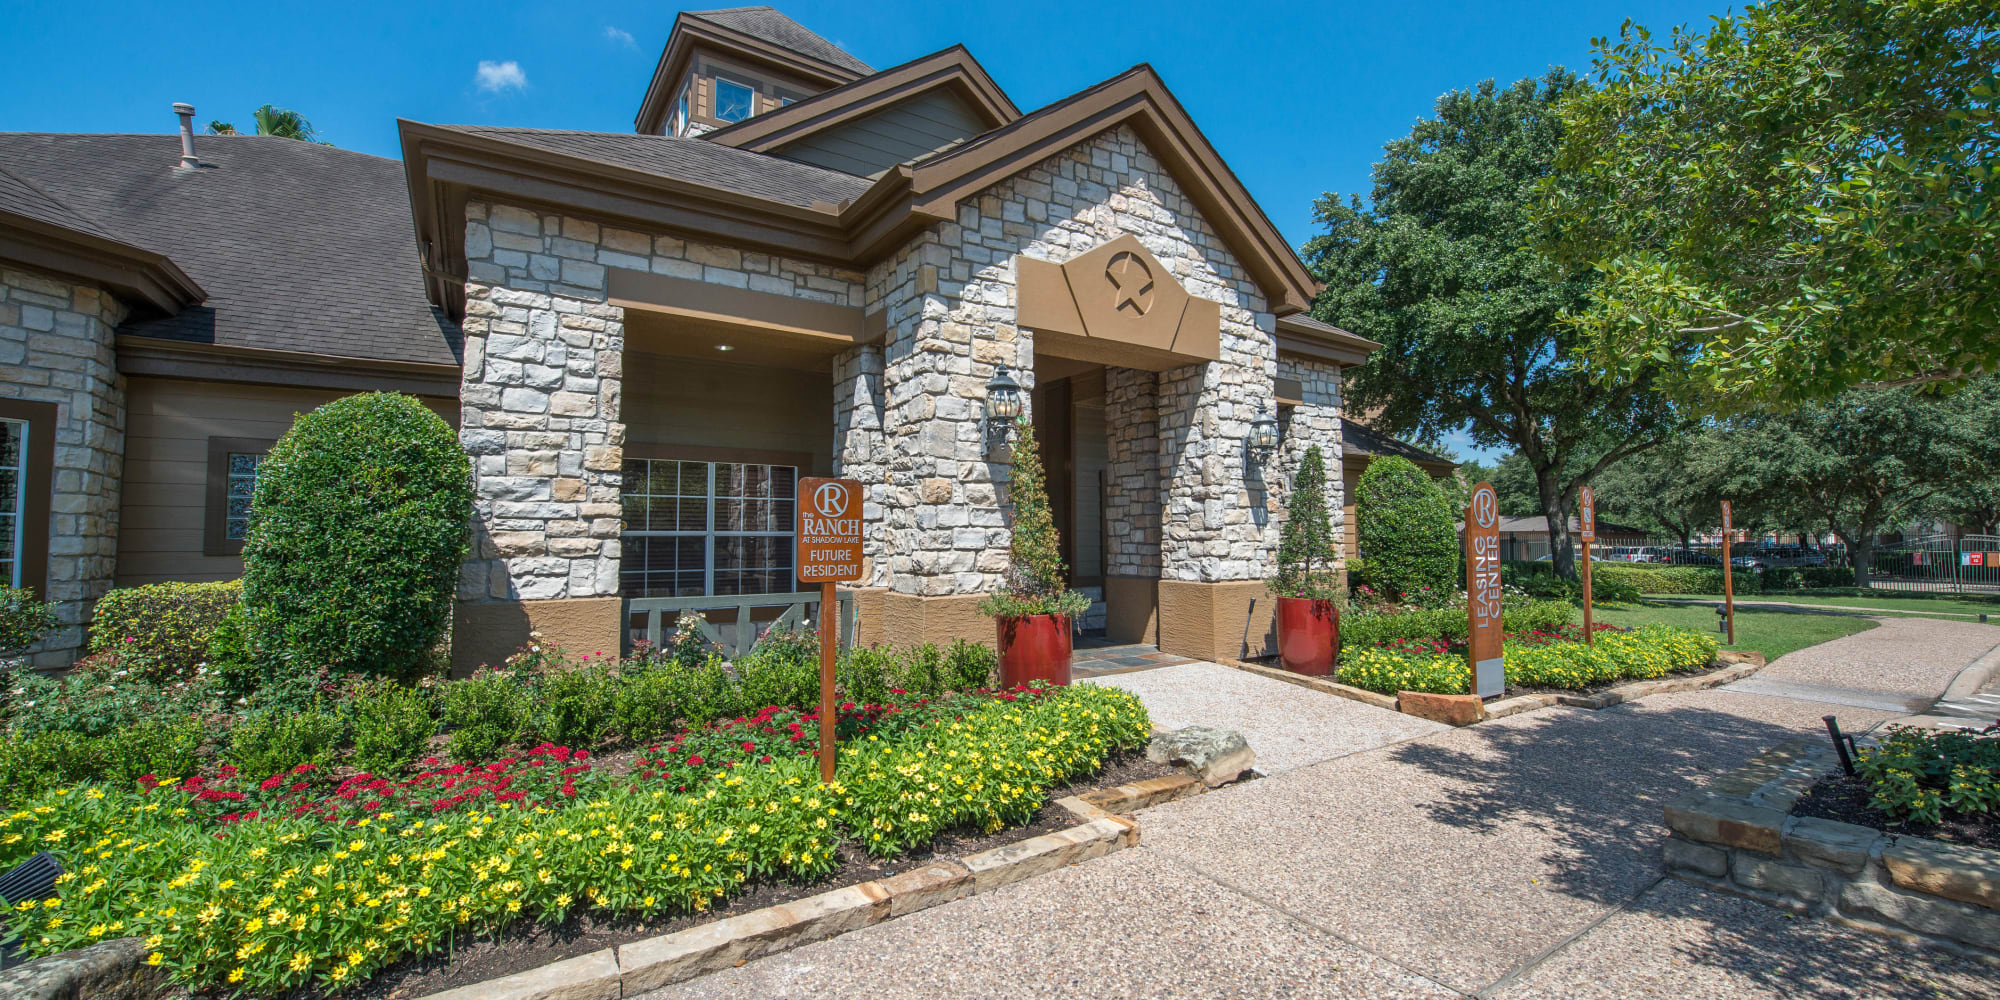 Apartments at The Ranch at Shadow Lake in Houston, Texas